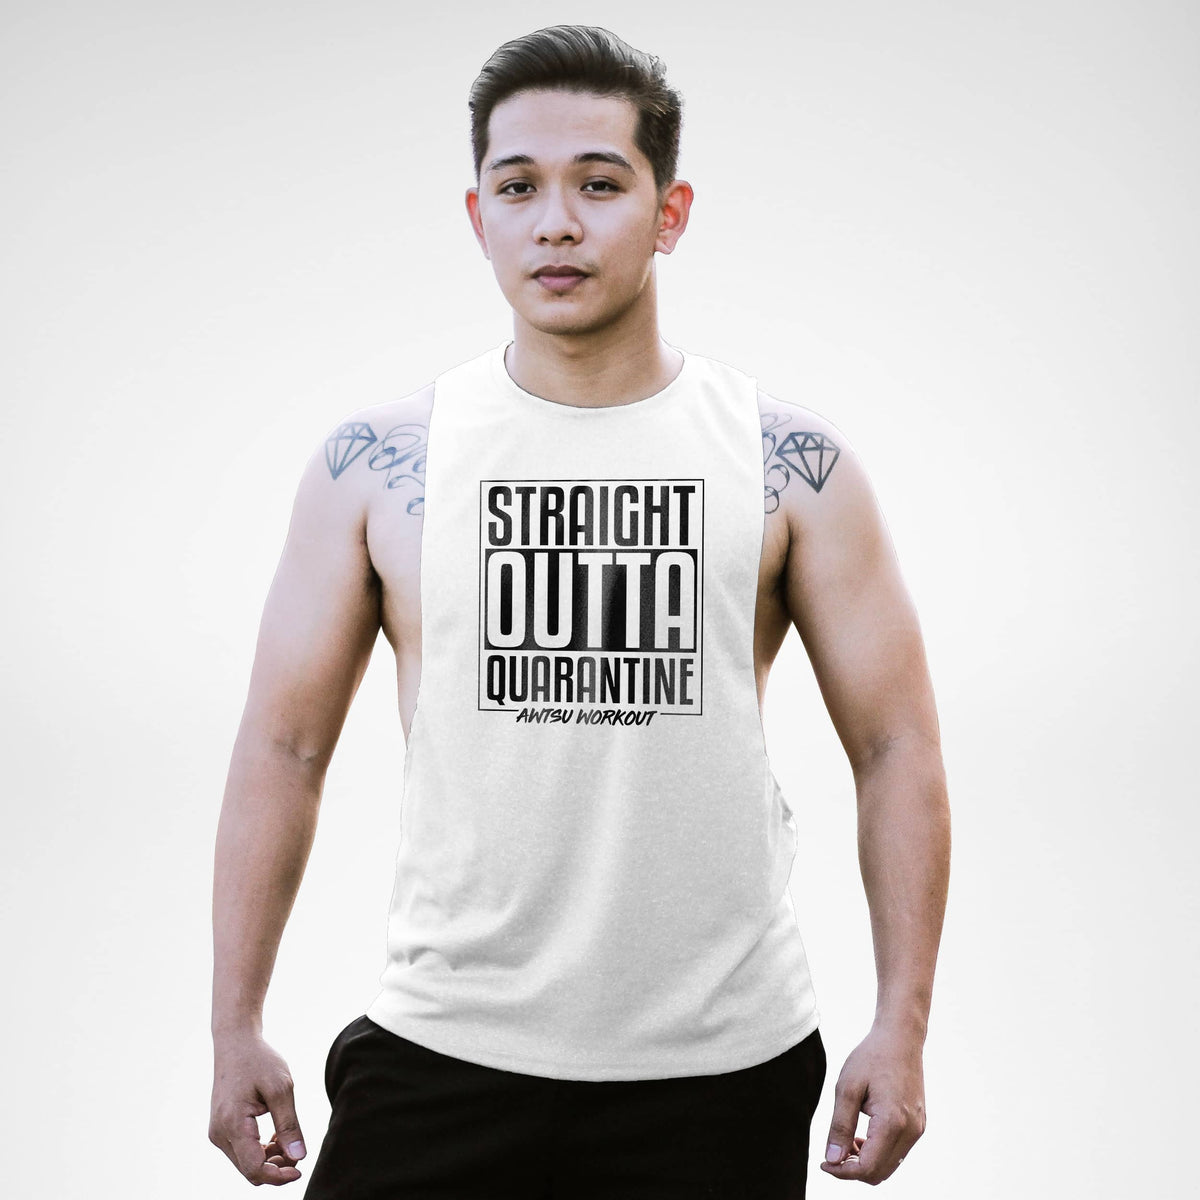 Straight Outta Qūārantine Awtsu Workout Openside Tank Top